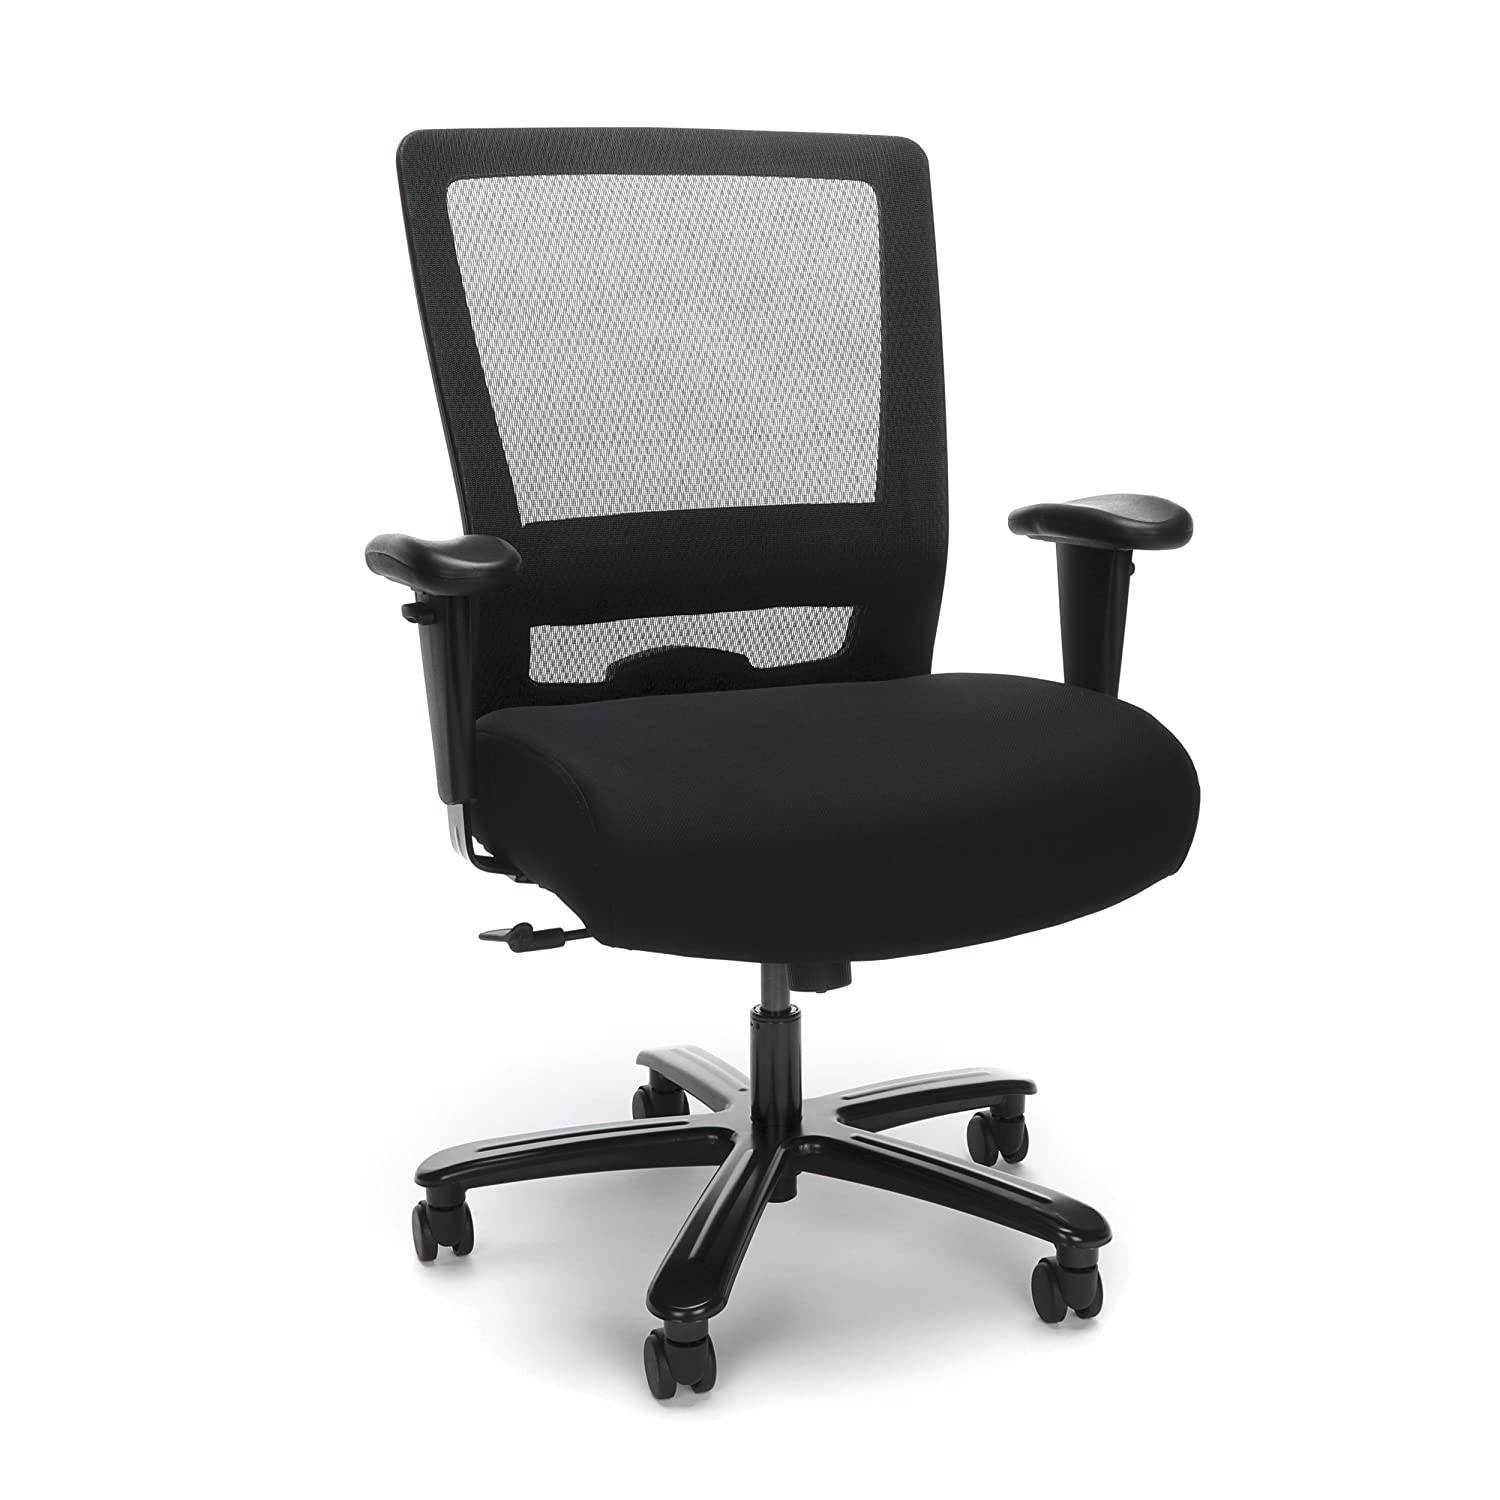 Pleasant Essentials Big And Tall Ergonomic Chair Fabric And Mesh Office Chair With Adjustable Arms Black Ess 3049 Blk Home Interior And Landscaping Transignezvosmurscom